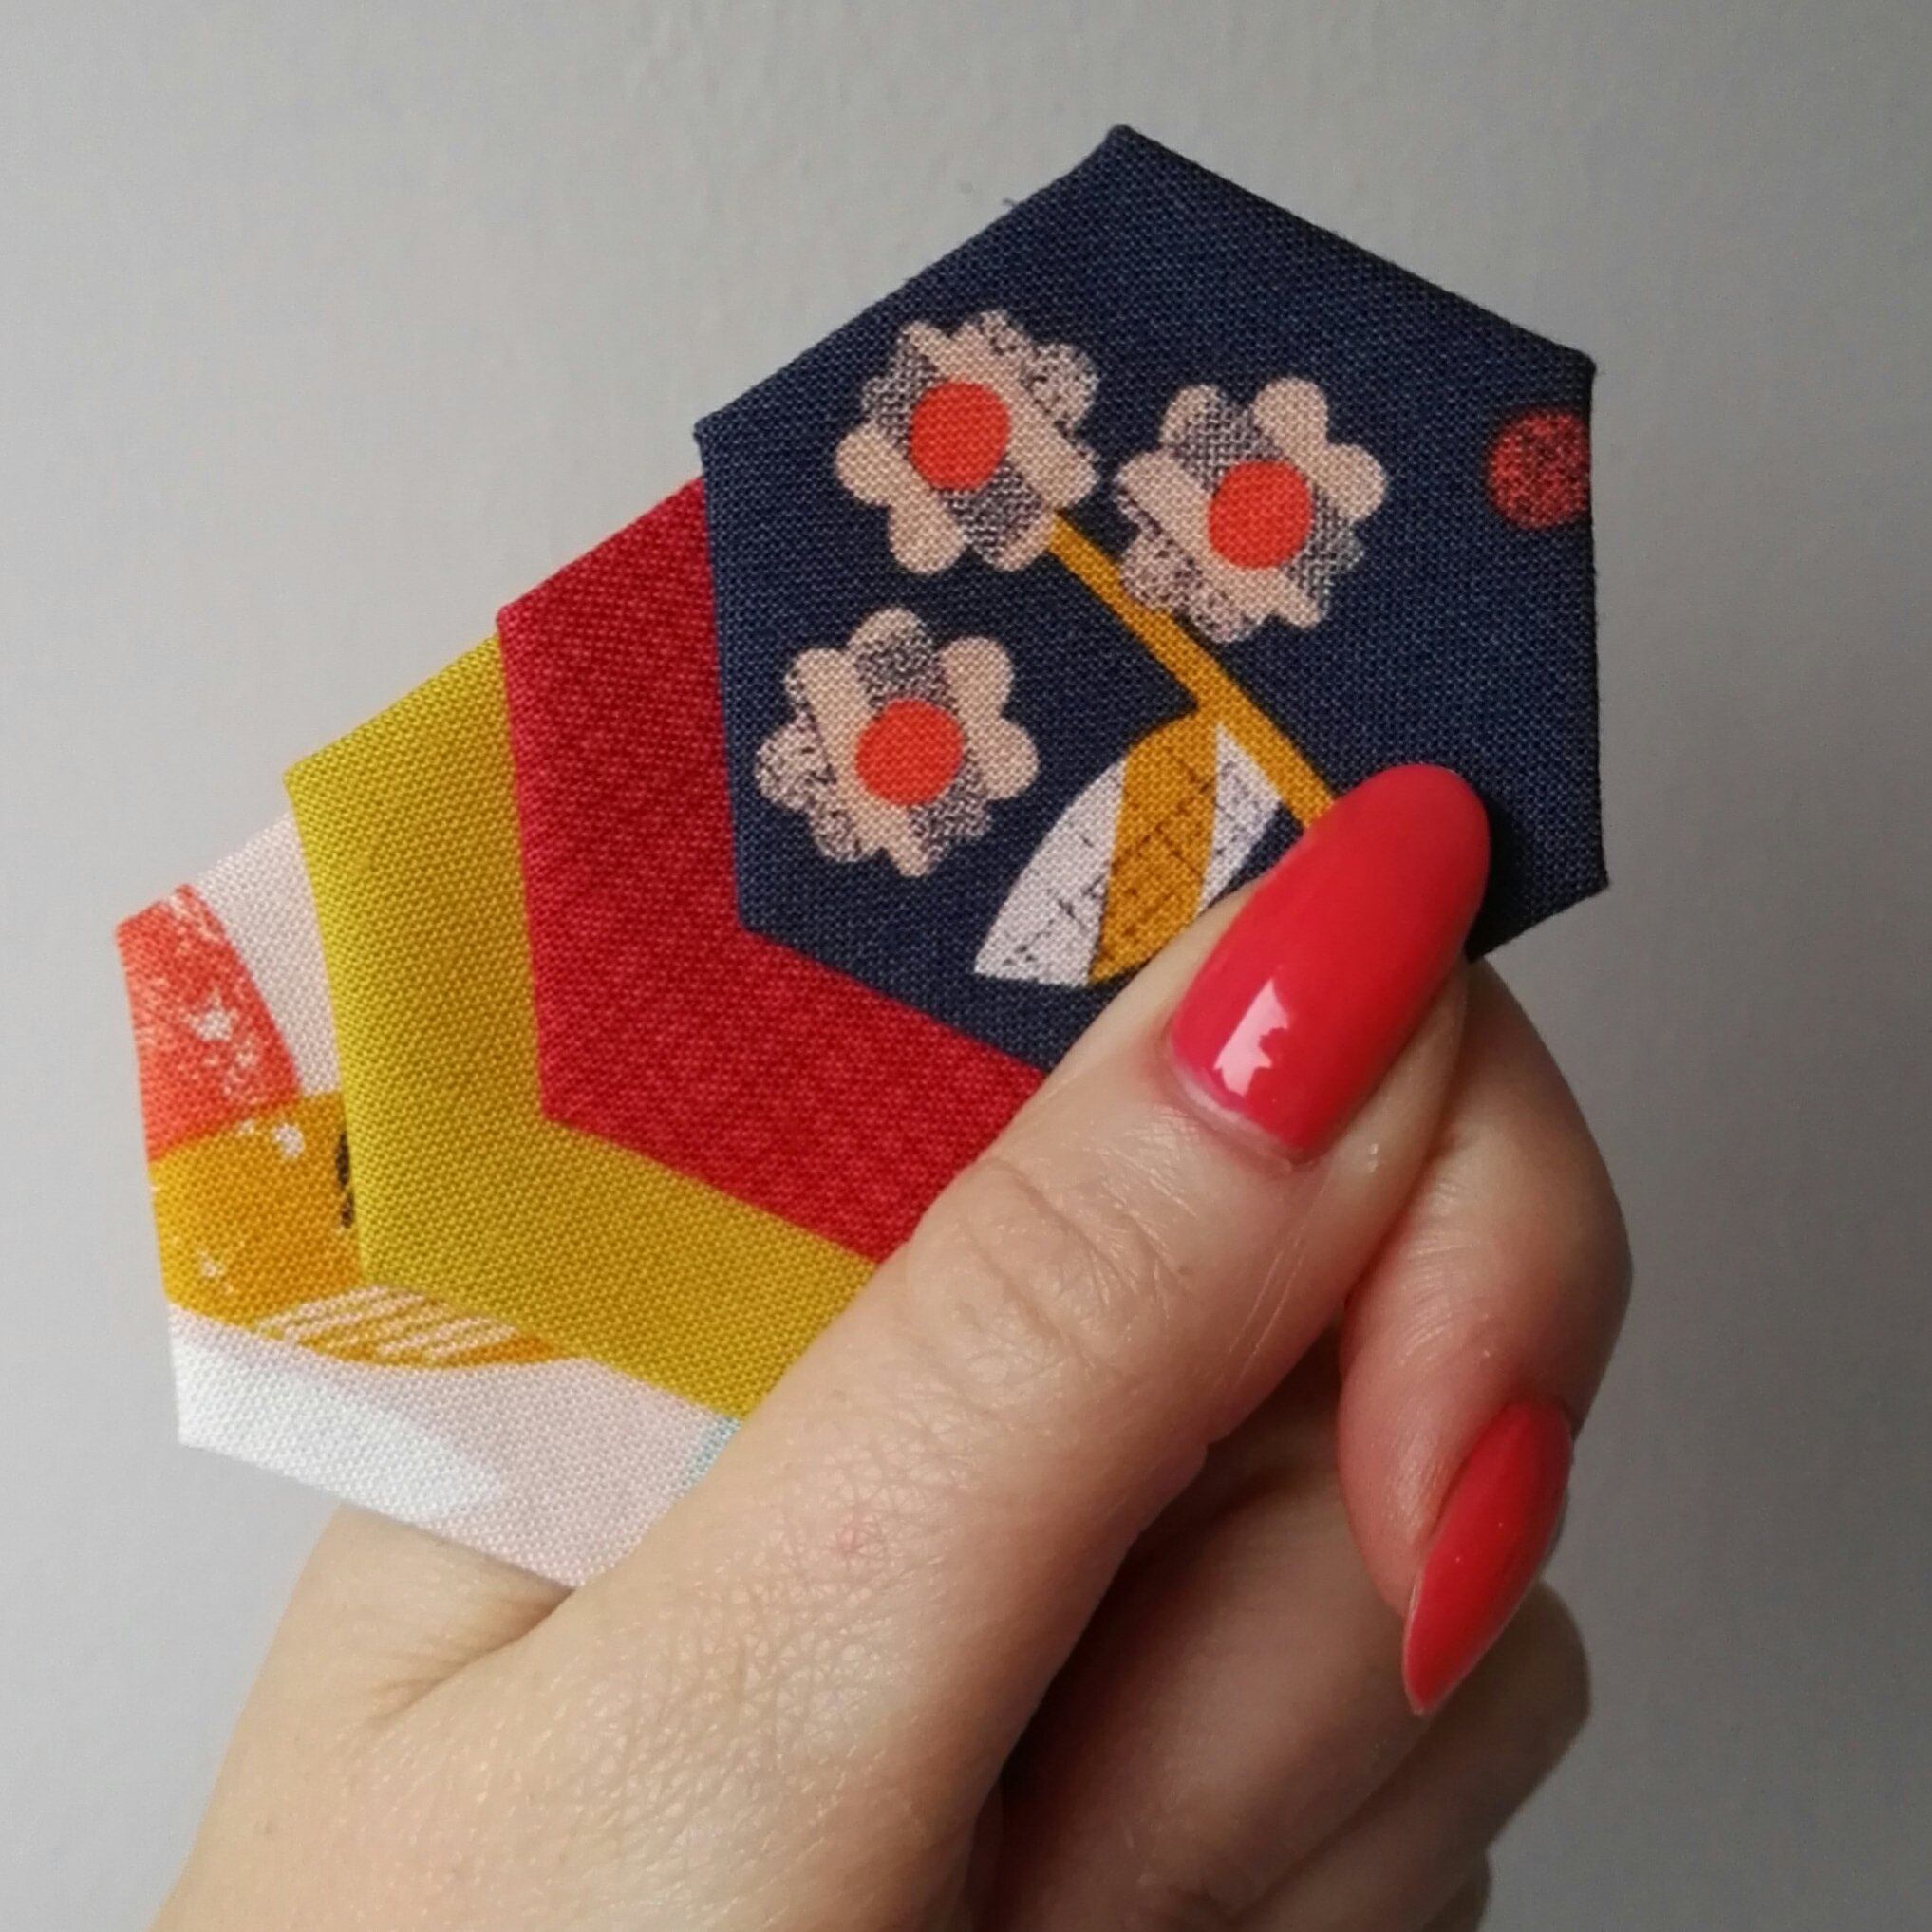 Sewing Quarter Hexies